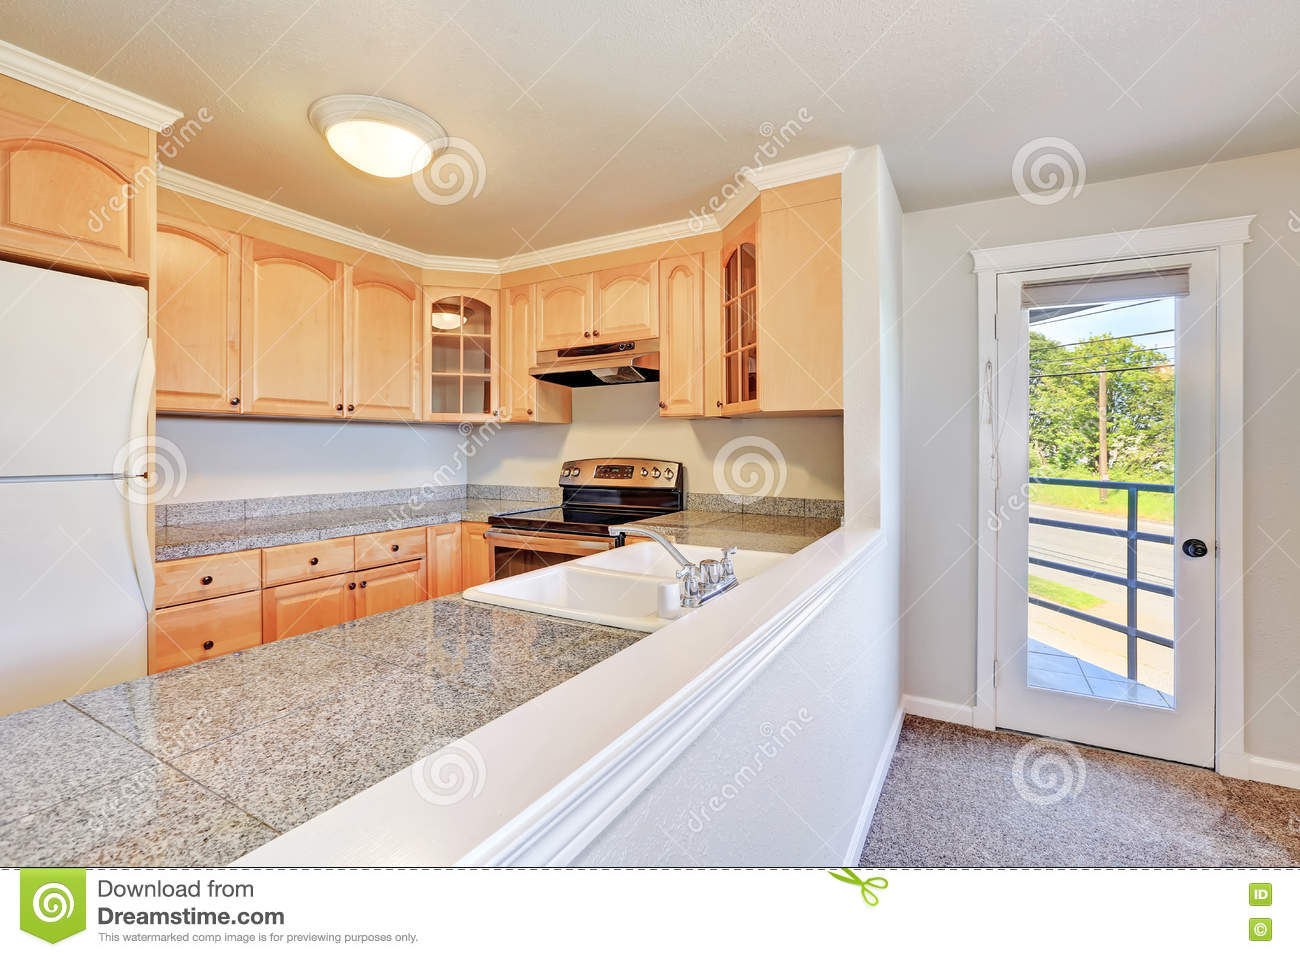 Cabinet D Architecte Nice interior of nice u-shaped kitchen room stock image - image